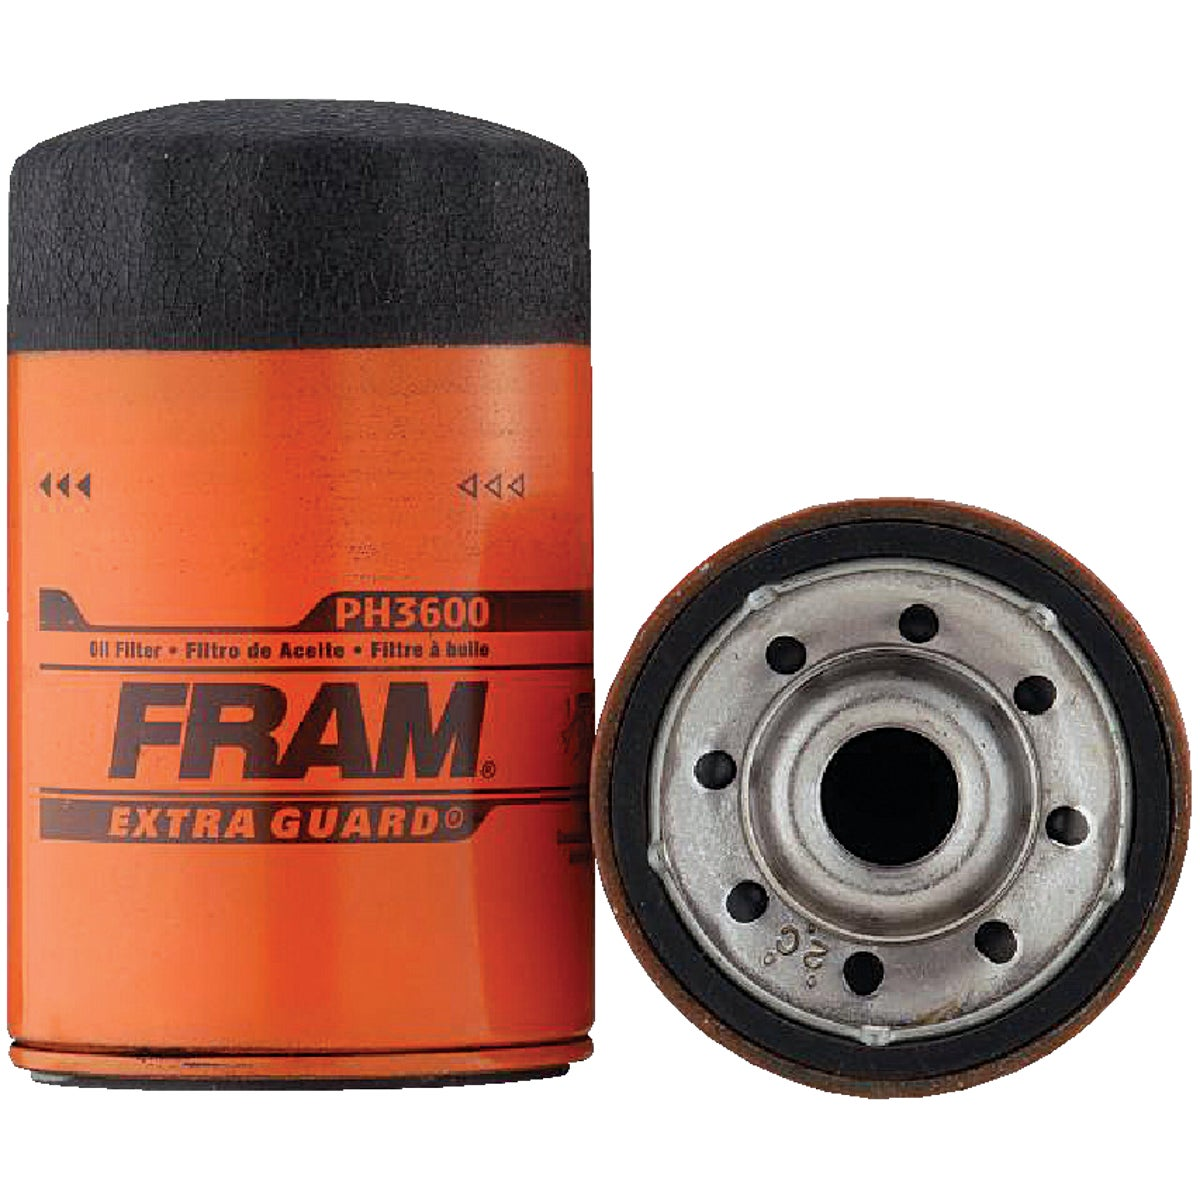 OIL FILTER - PH3600 by Fram Group